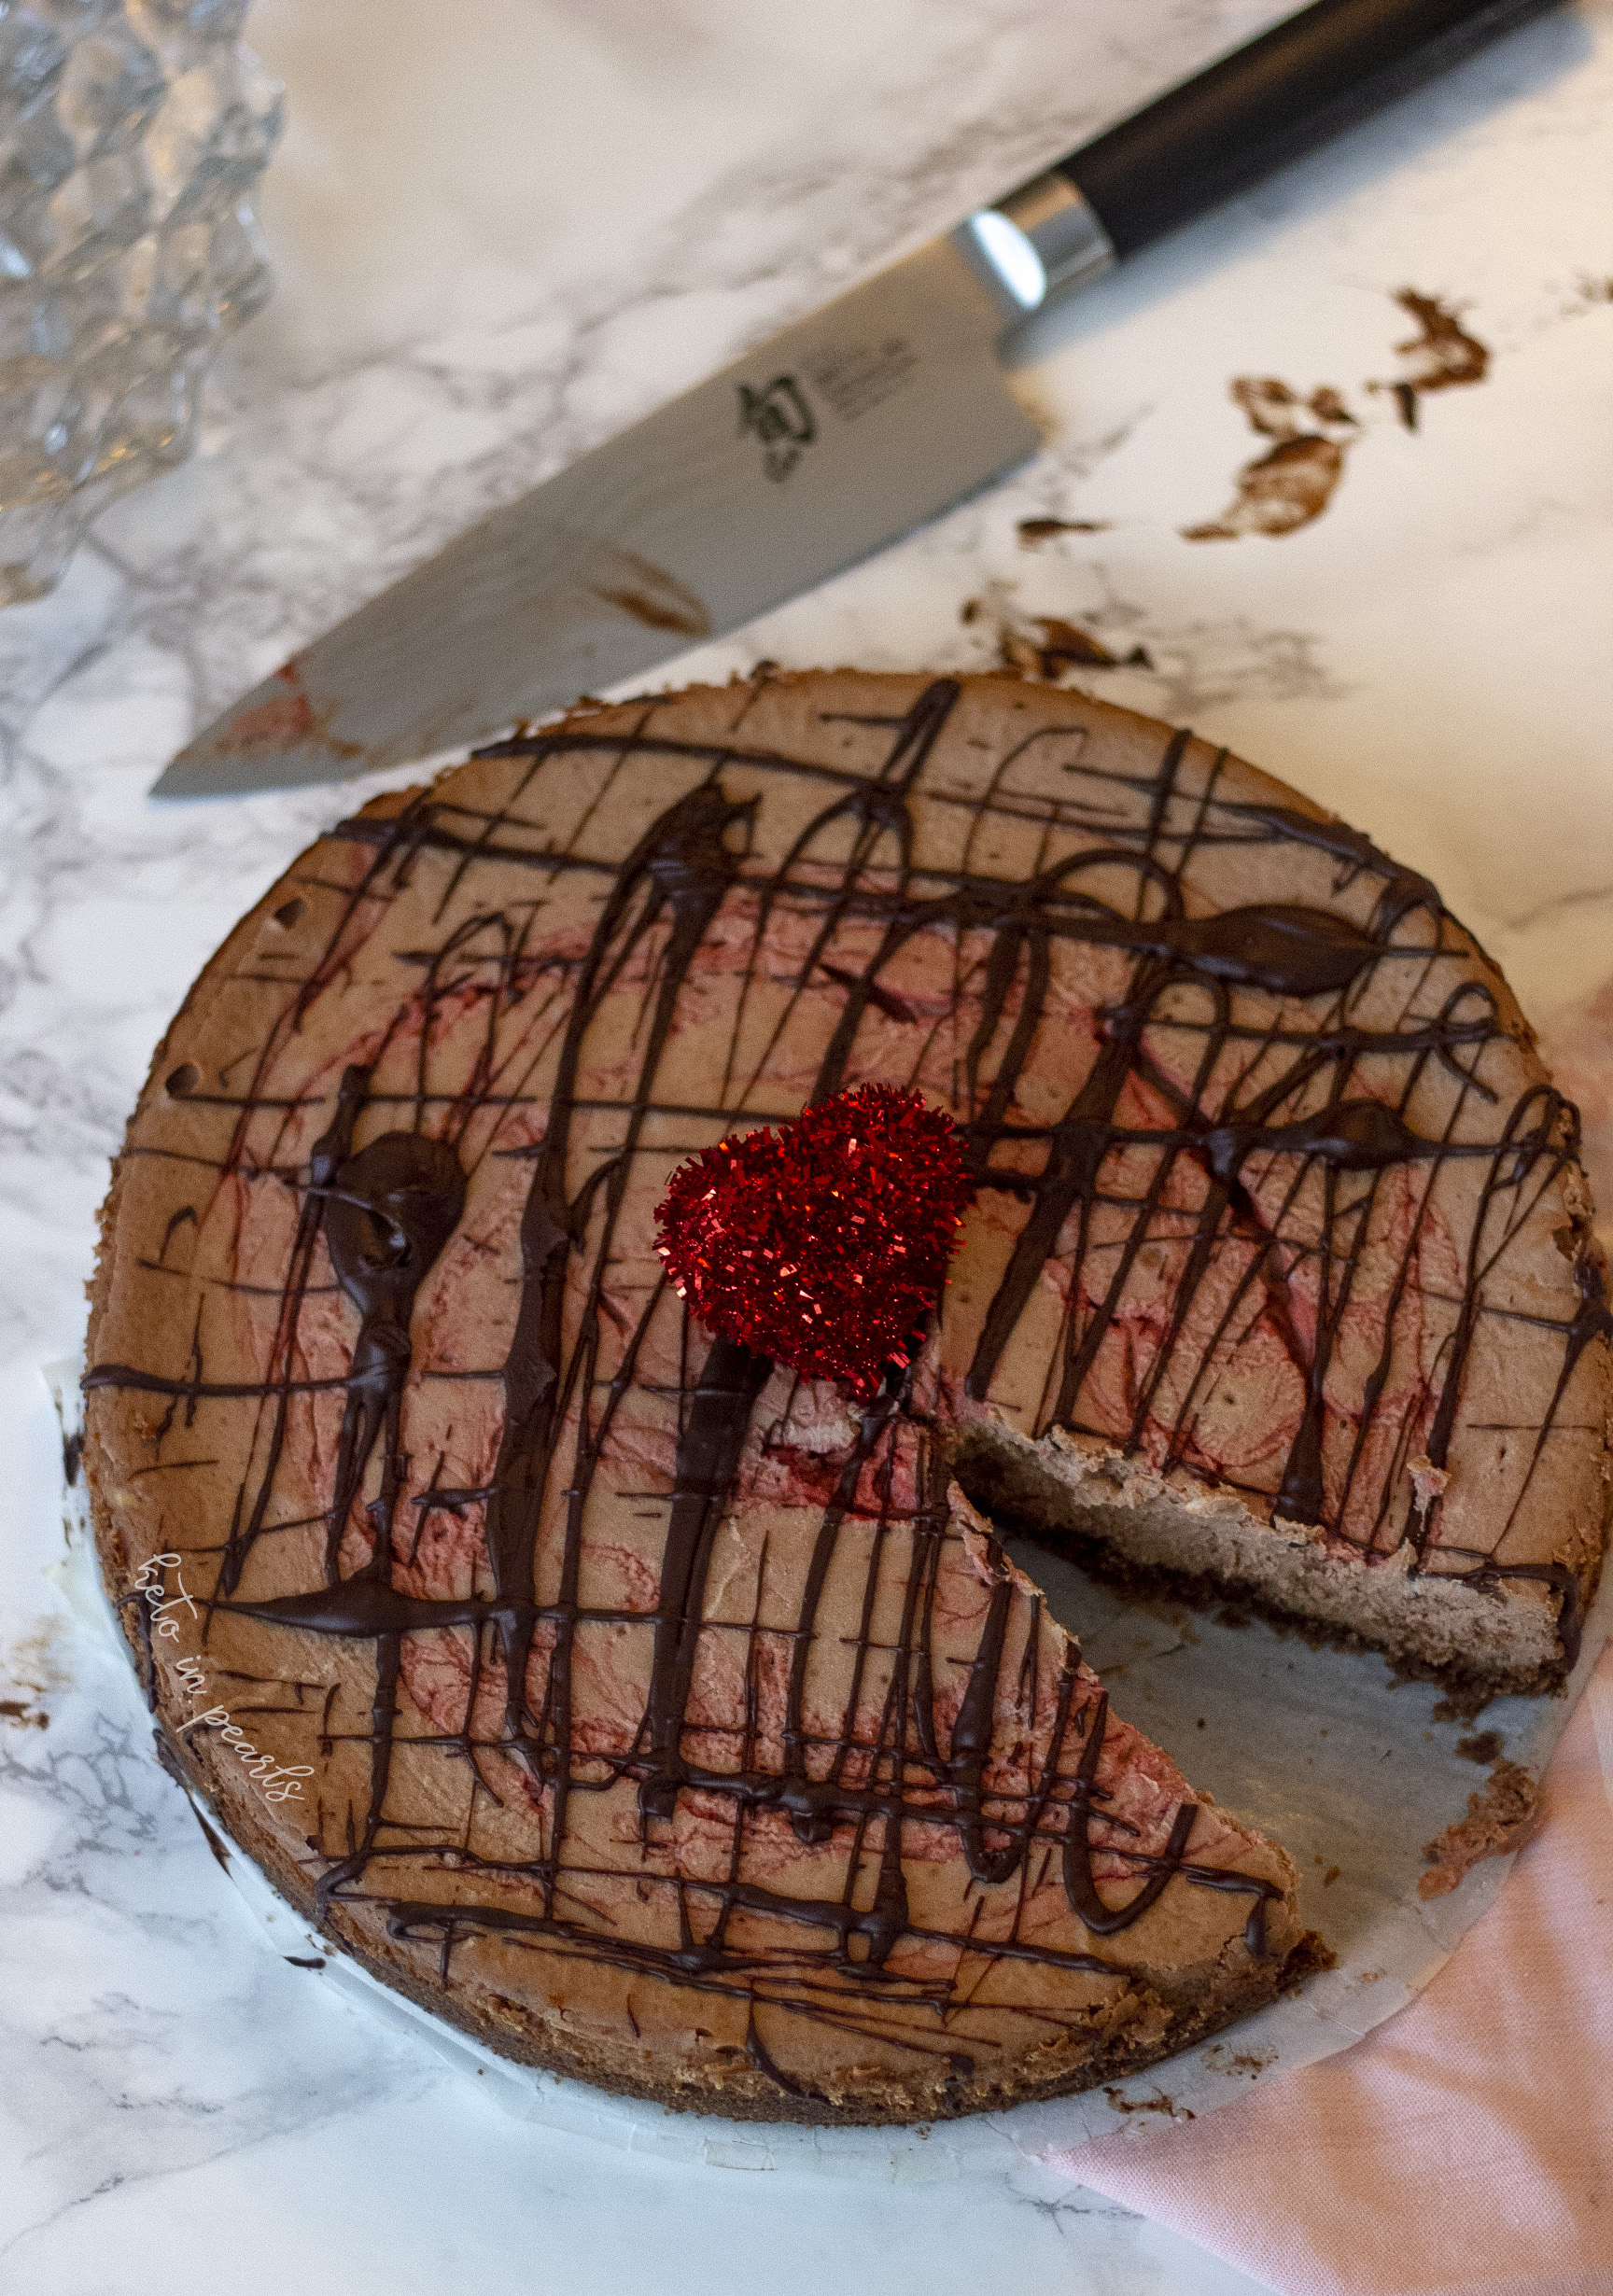 A keto cheesecake with decadent dark chocolate and bright notes of raspberry rests on a chocolate cookie crust. If you're a keto chocoholic, you will love this Dark Chocolate Raspberry Keto Cheesecake.